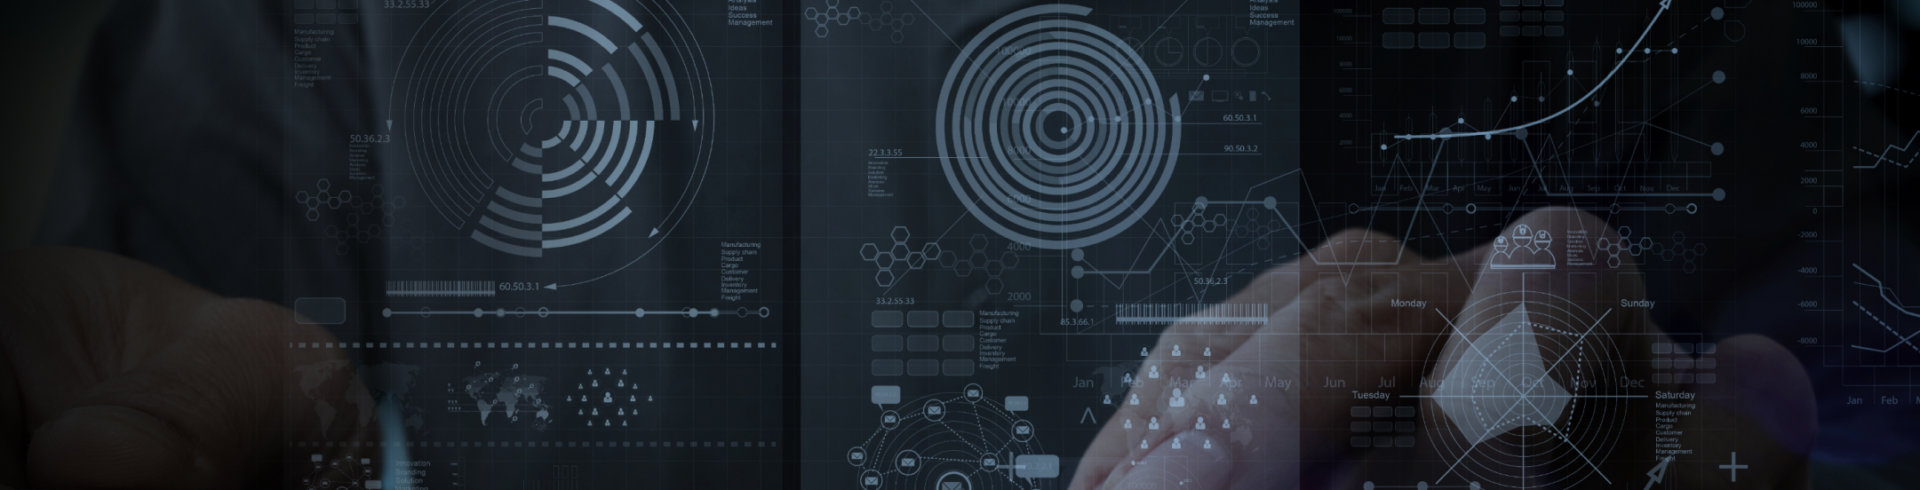 Driving Data in Research: A Roadmap to Enhanced System Usage and Capabilities